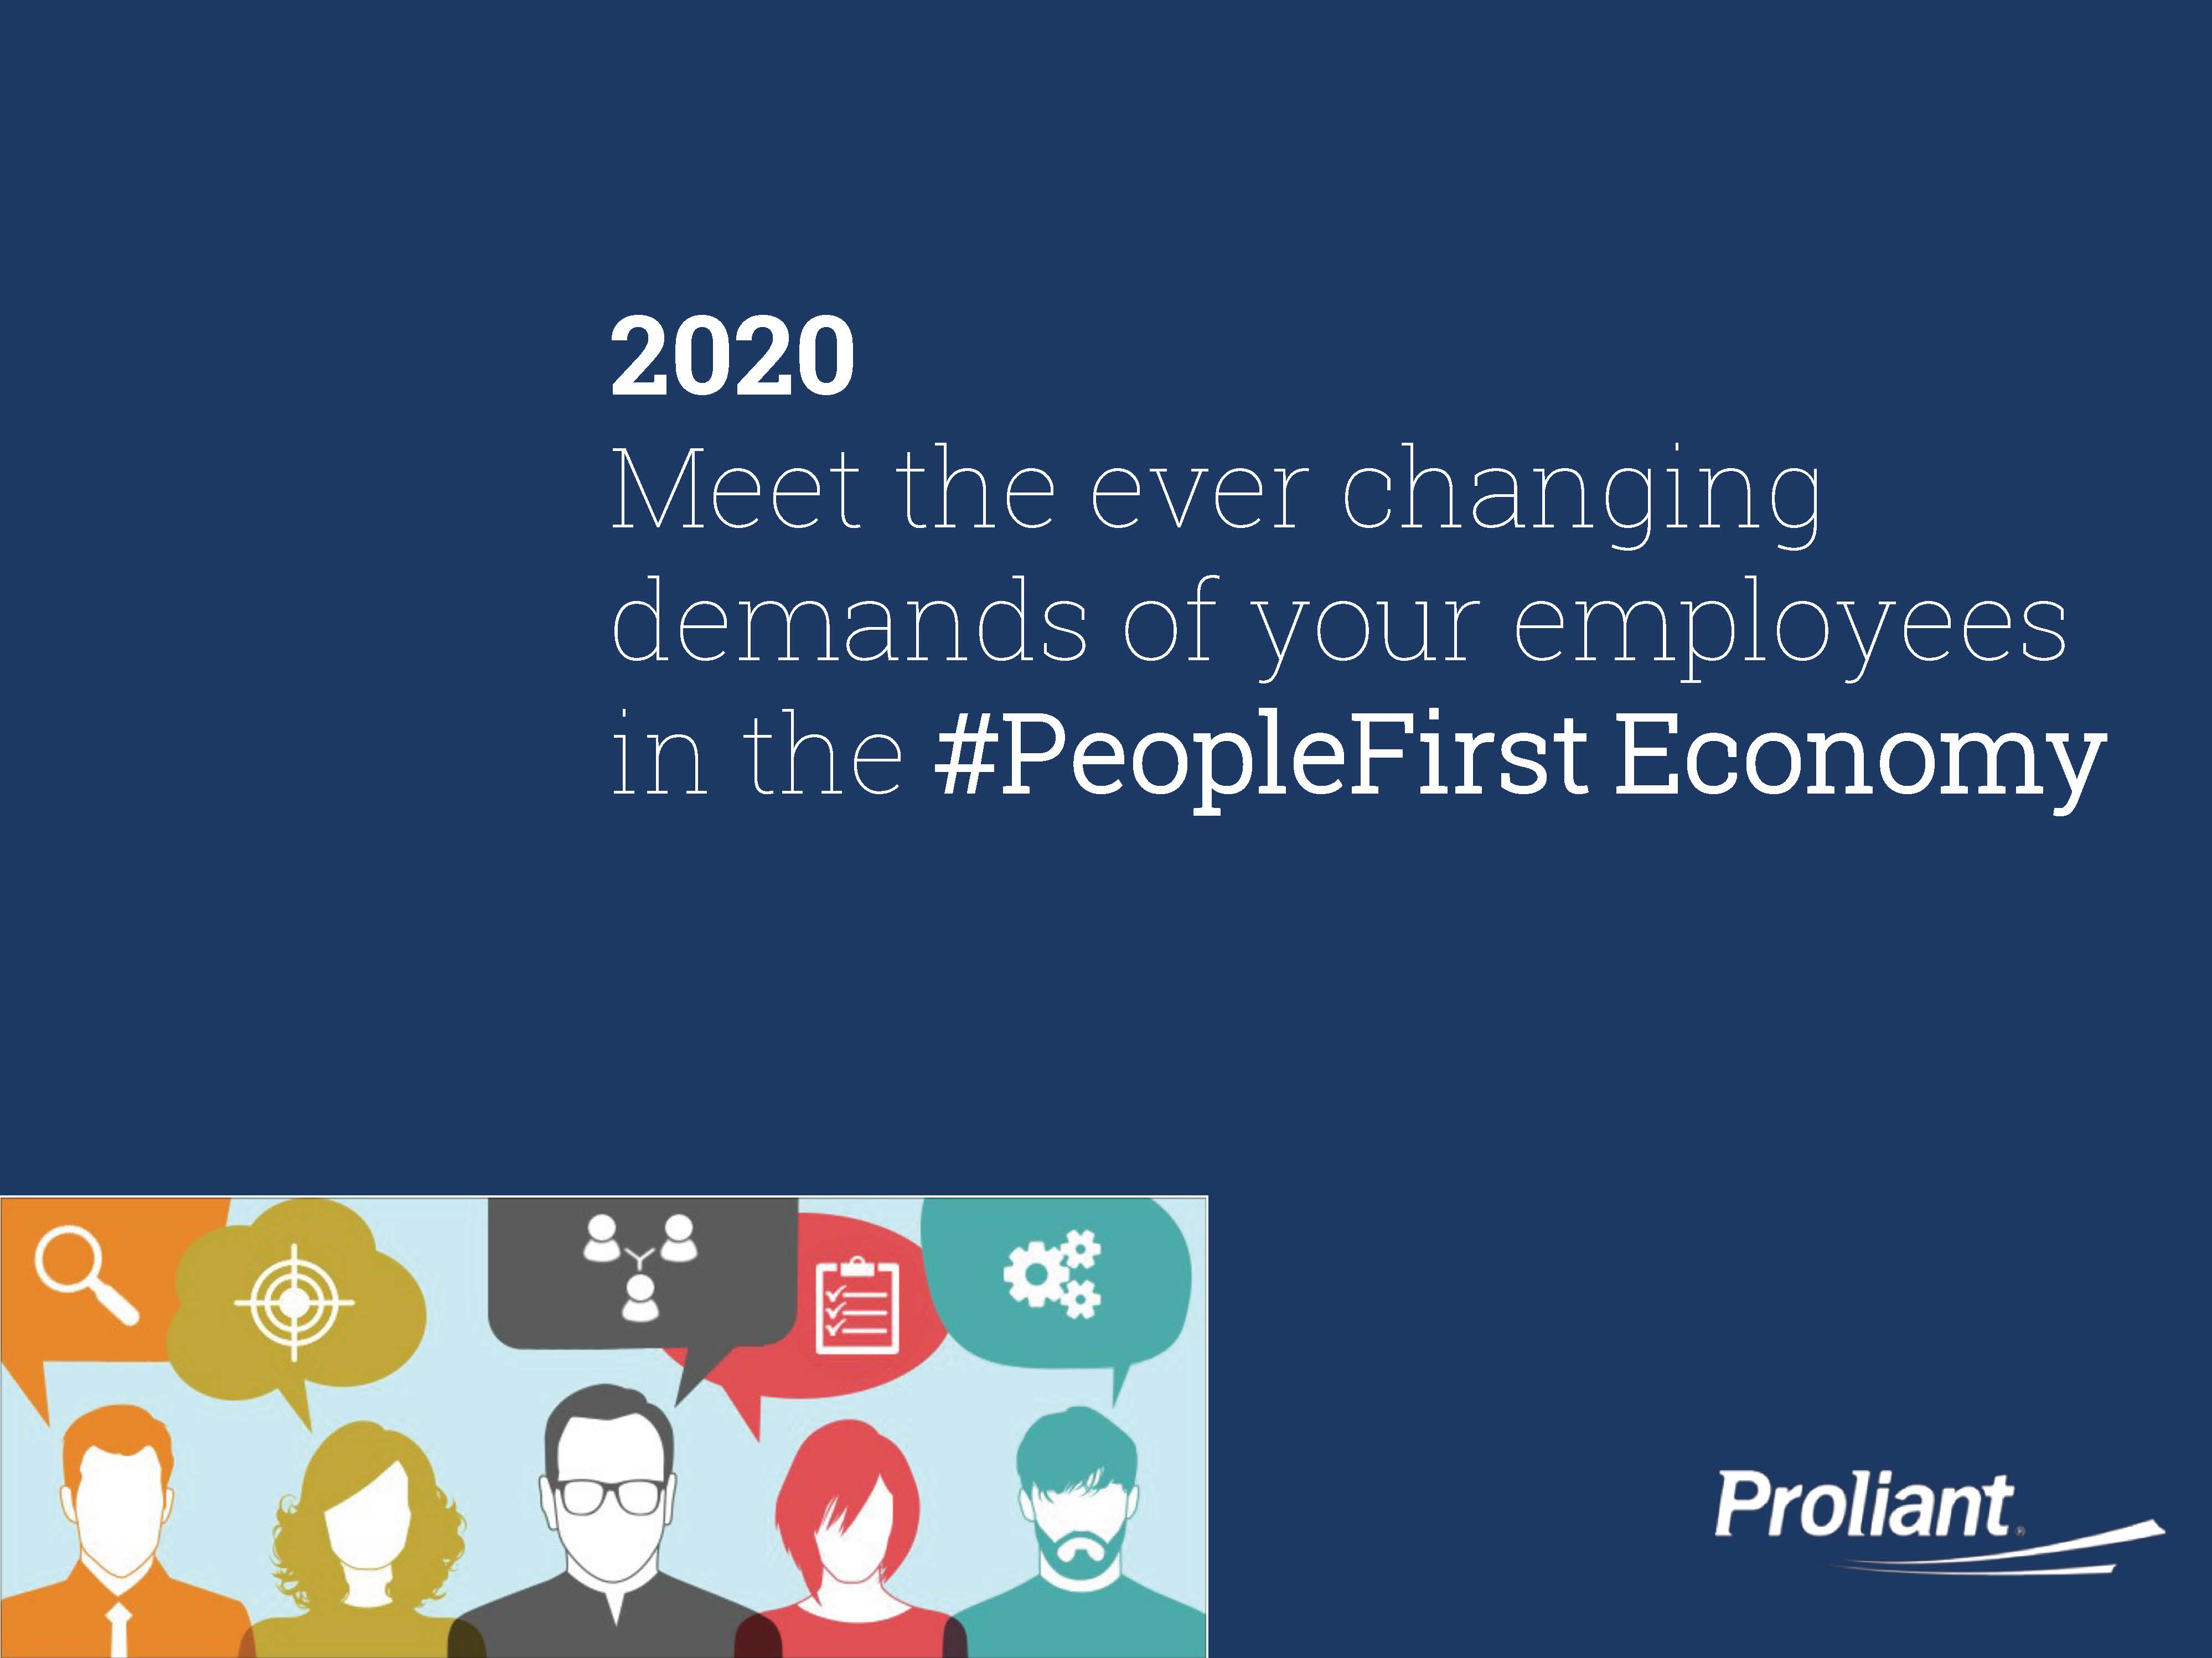 Meet the ever changing demands of your employees in the PeopleFirst Economy - Proliant-1